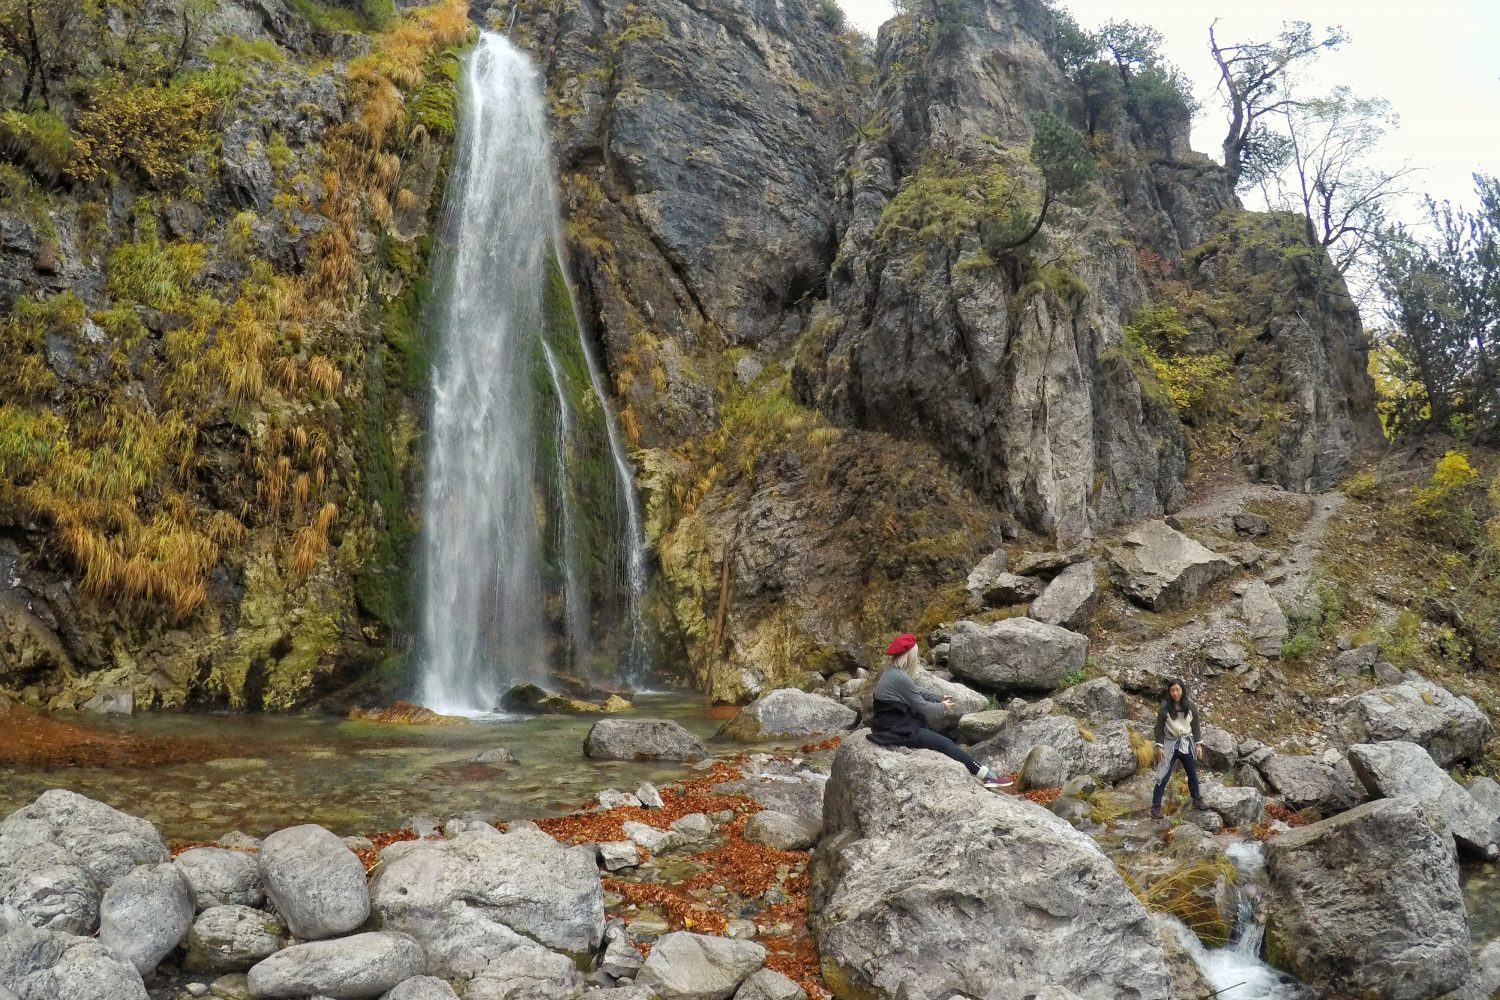 The Waterfall of Theth